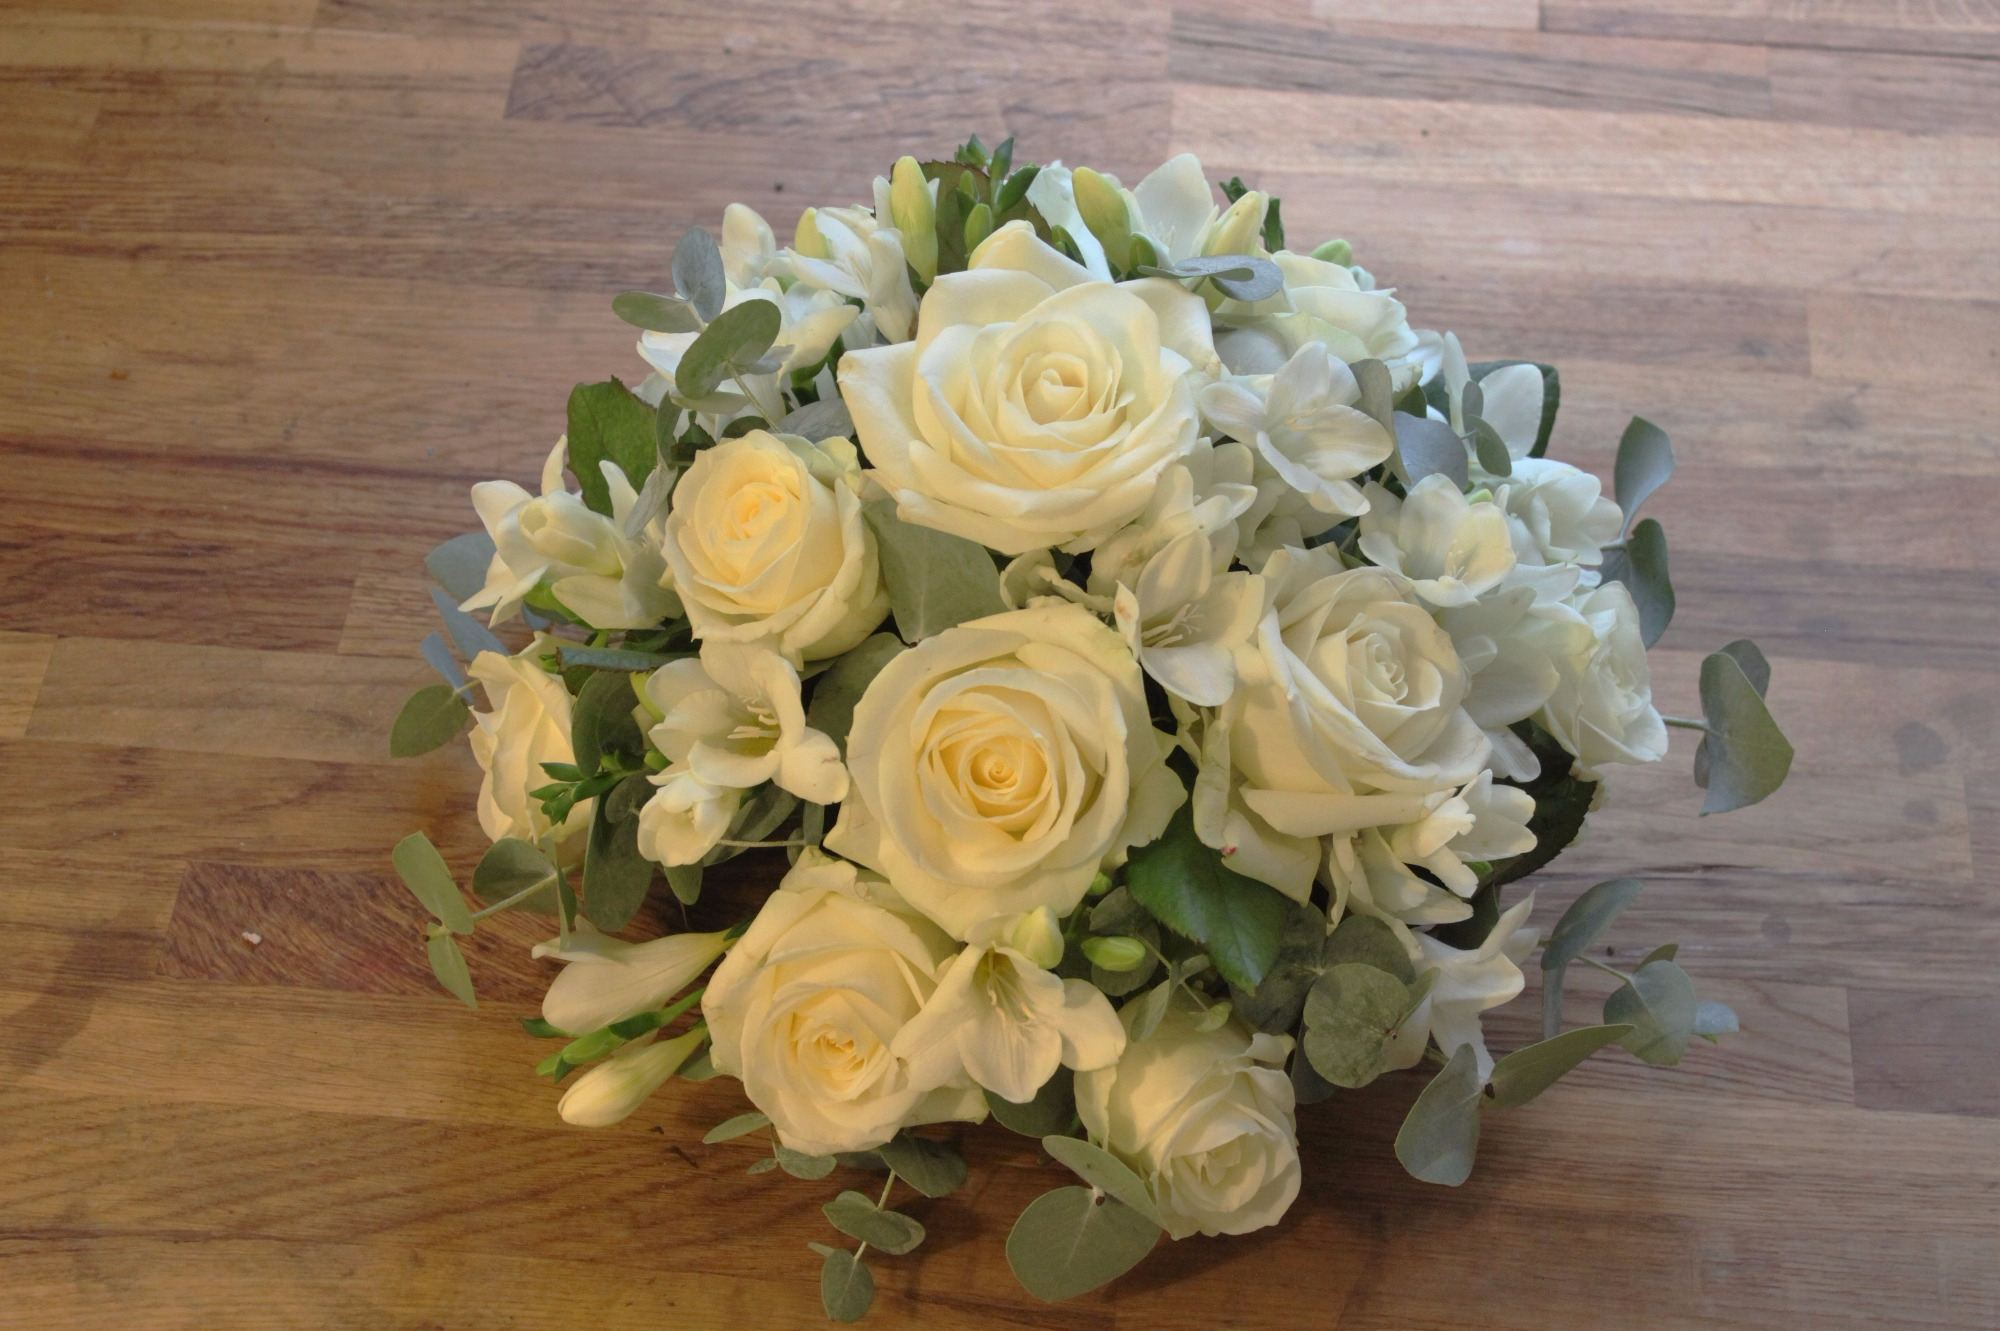 Ivory rose and white freesia posy